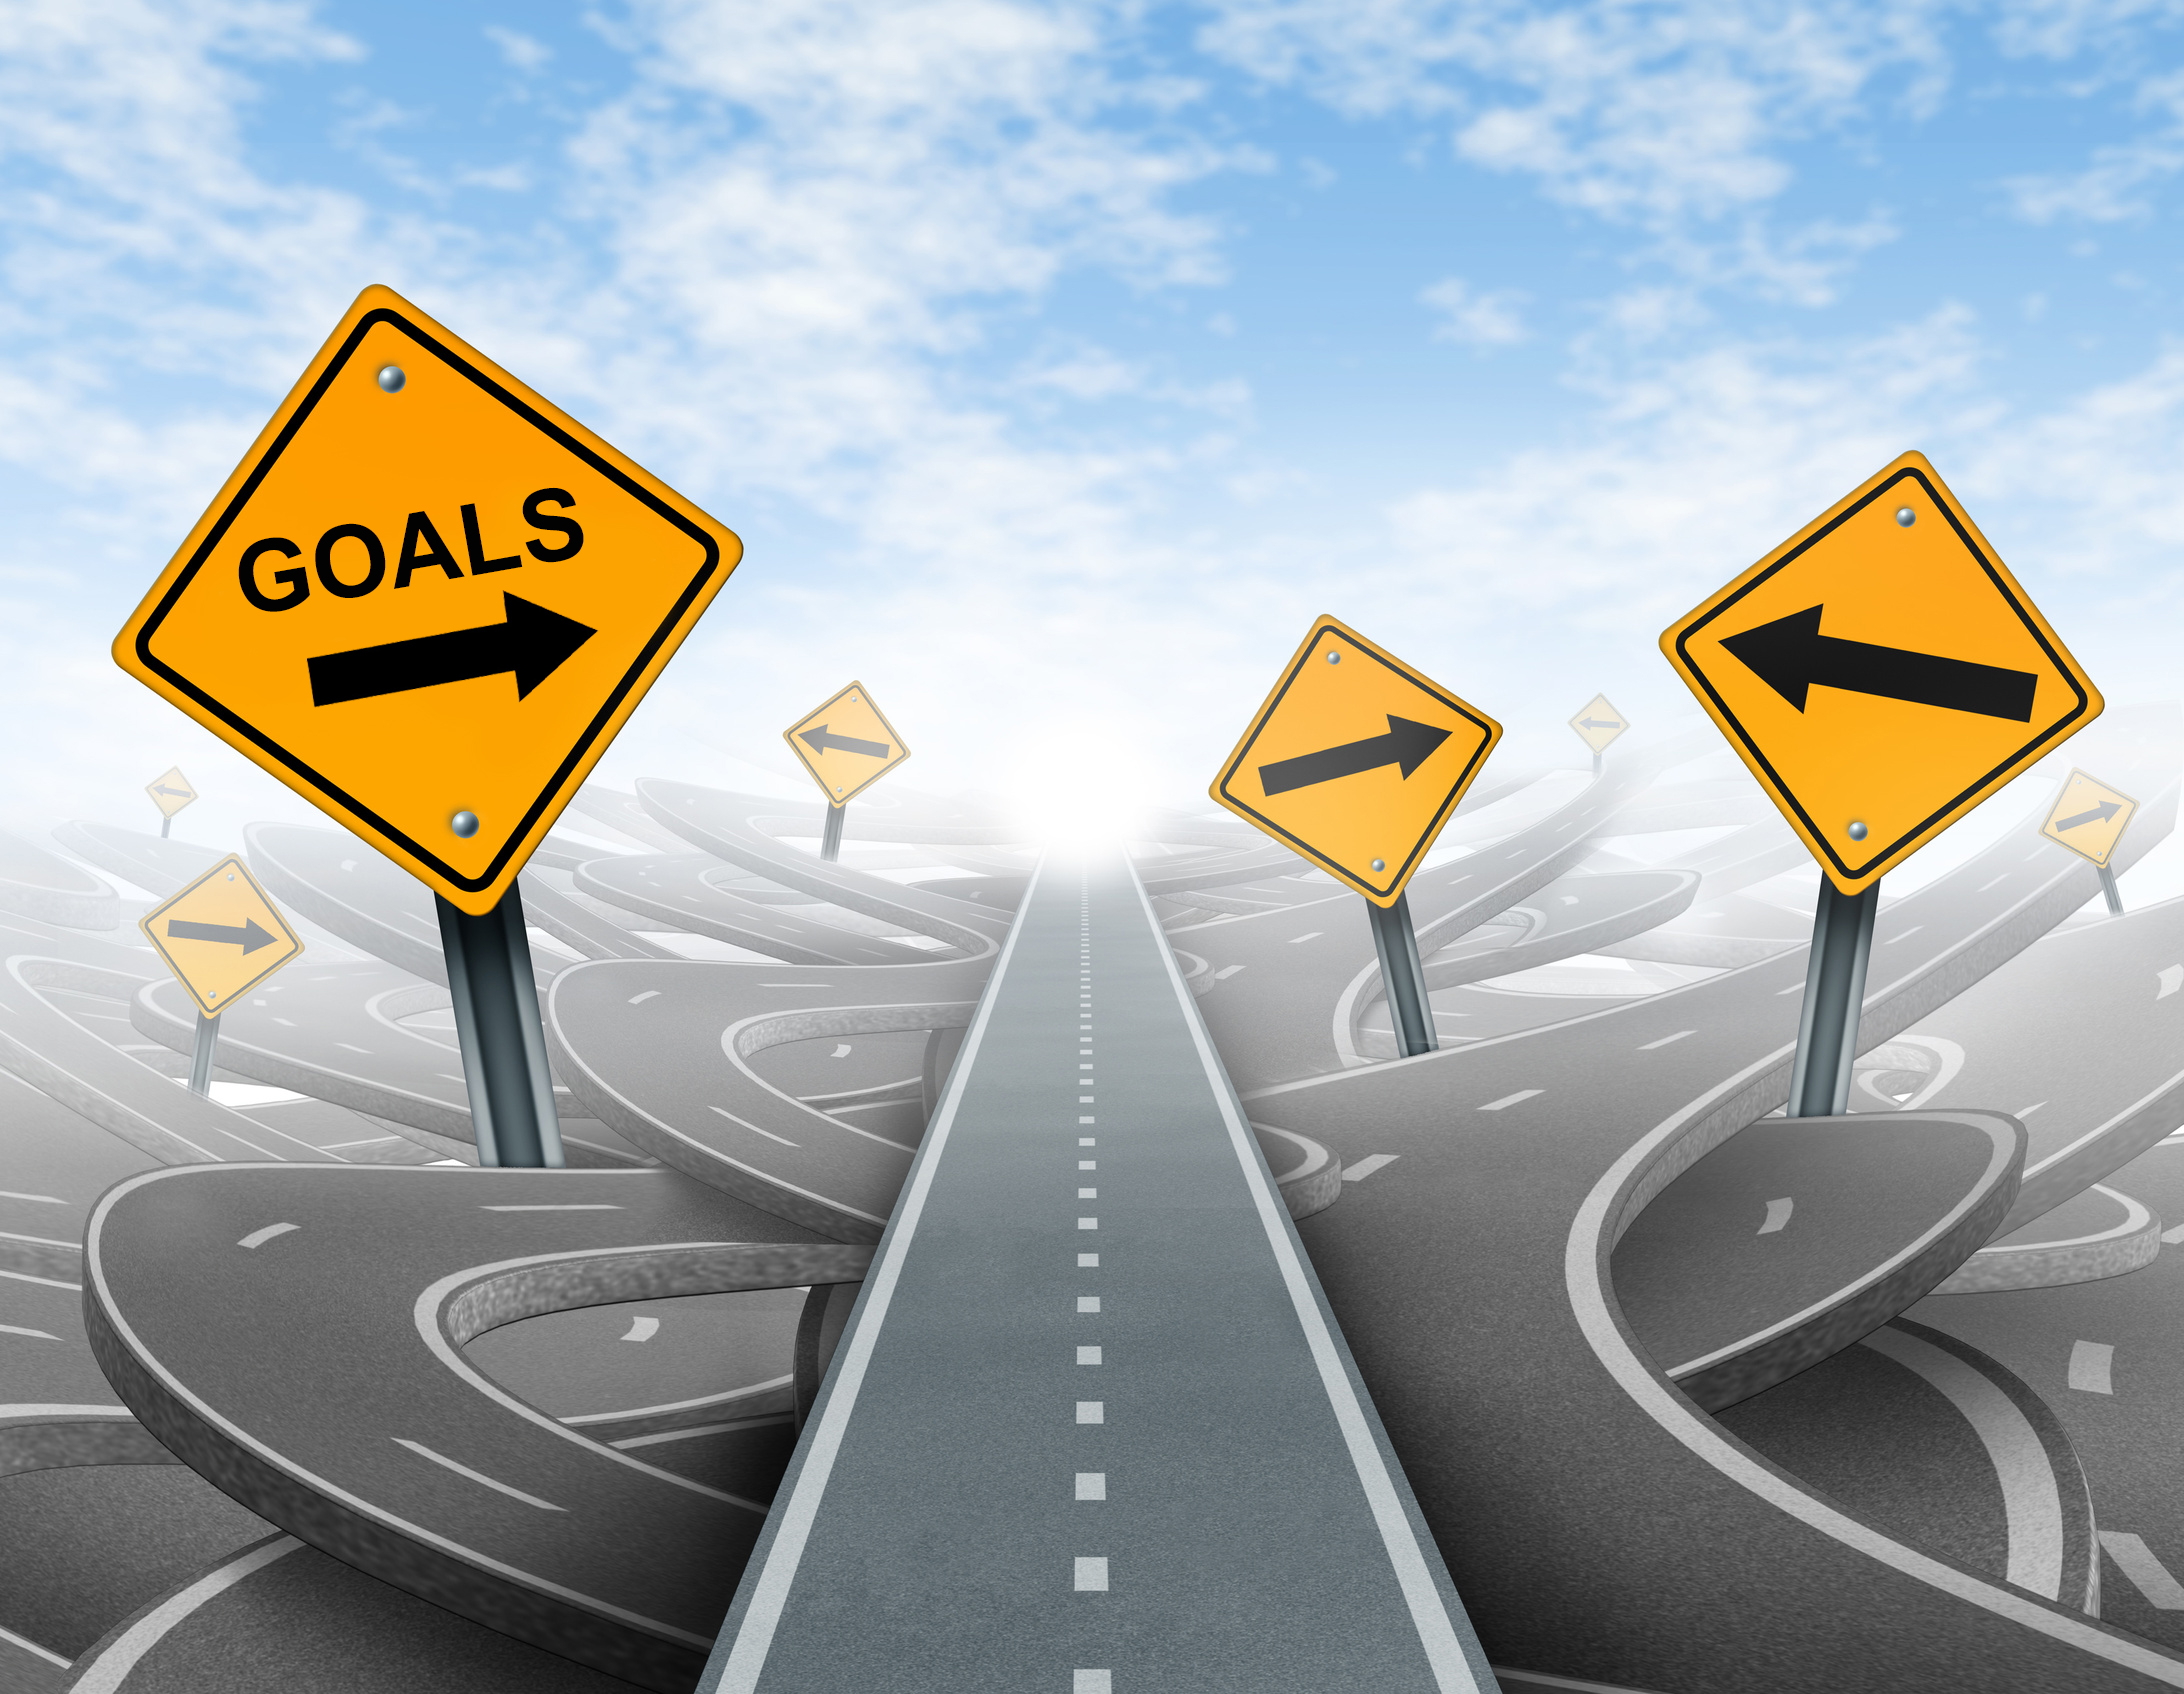 TOP 7 REASONS WHY MOST OF US FAIL TO MEET OUR GOALS